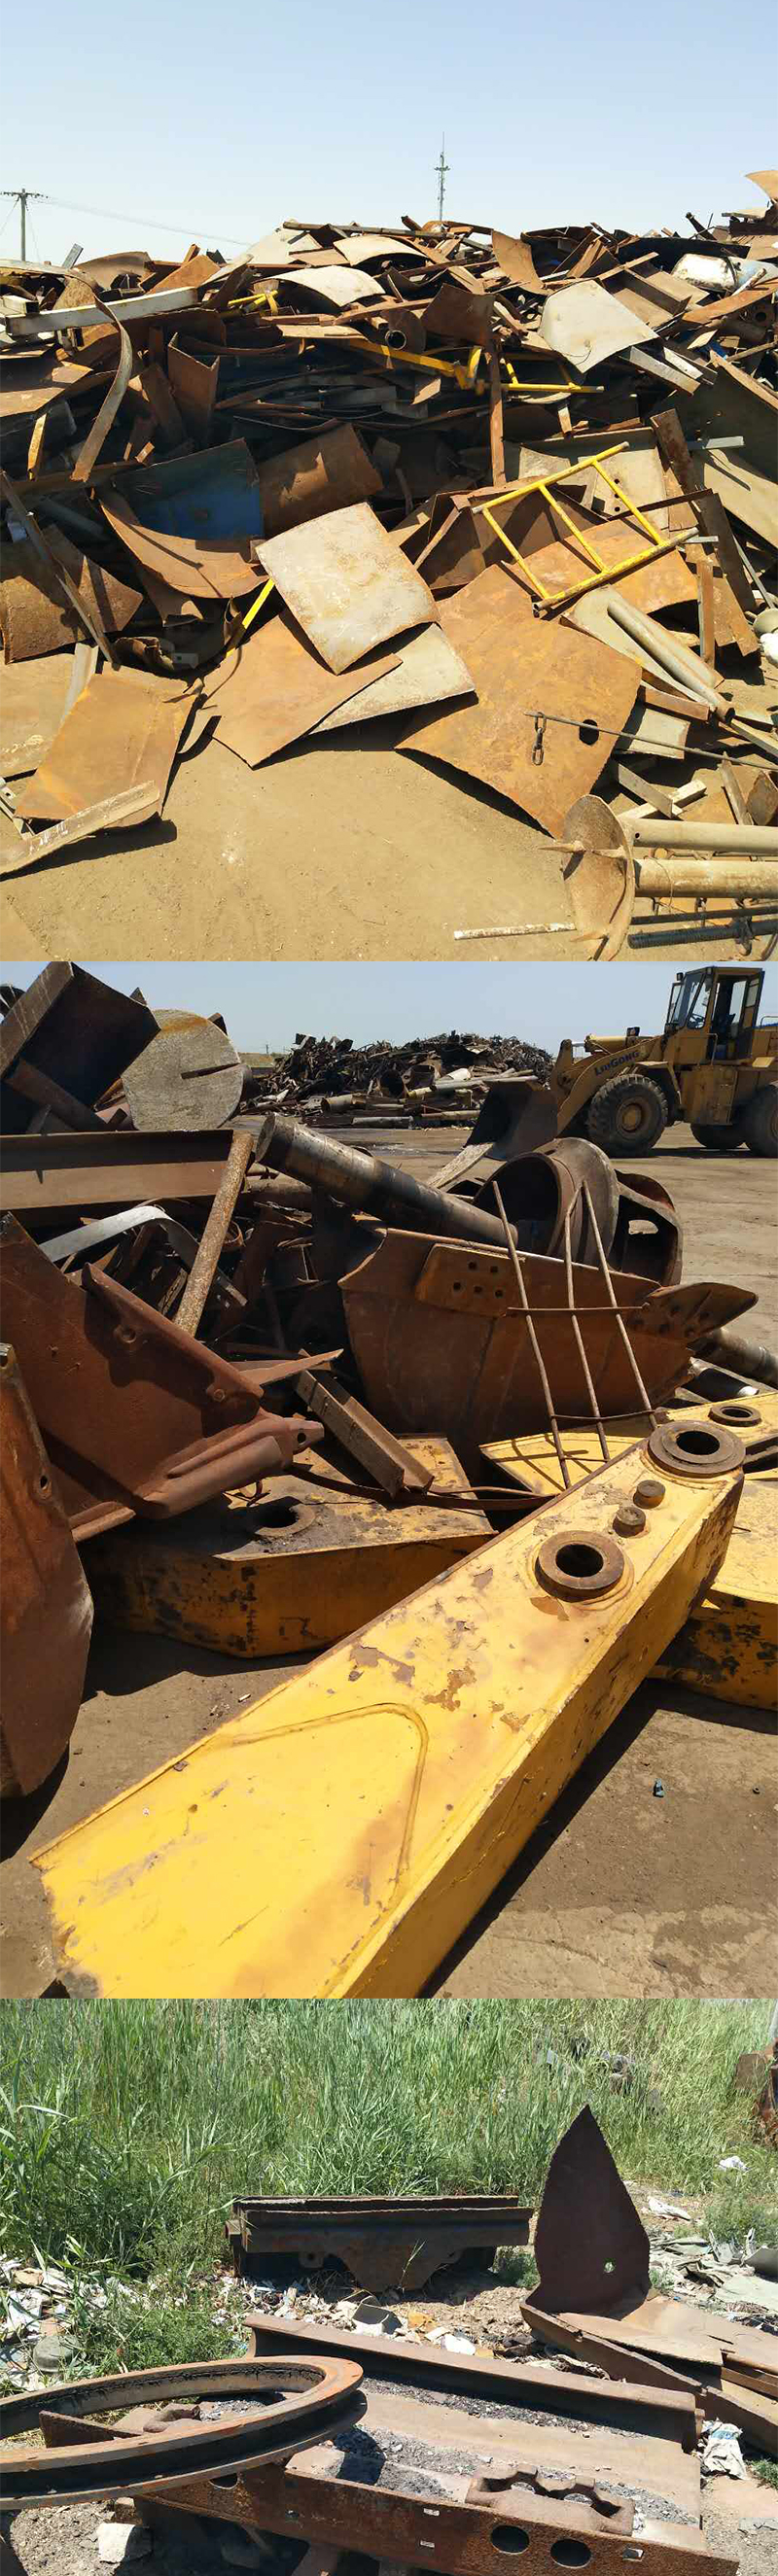 Steel Scarp Chinese Supplier Copper Scarps Metal Recycling Iron Re-Rolling Scrap Pieces